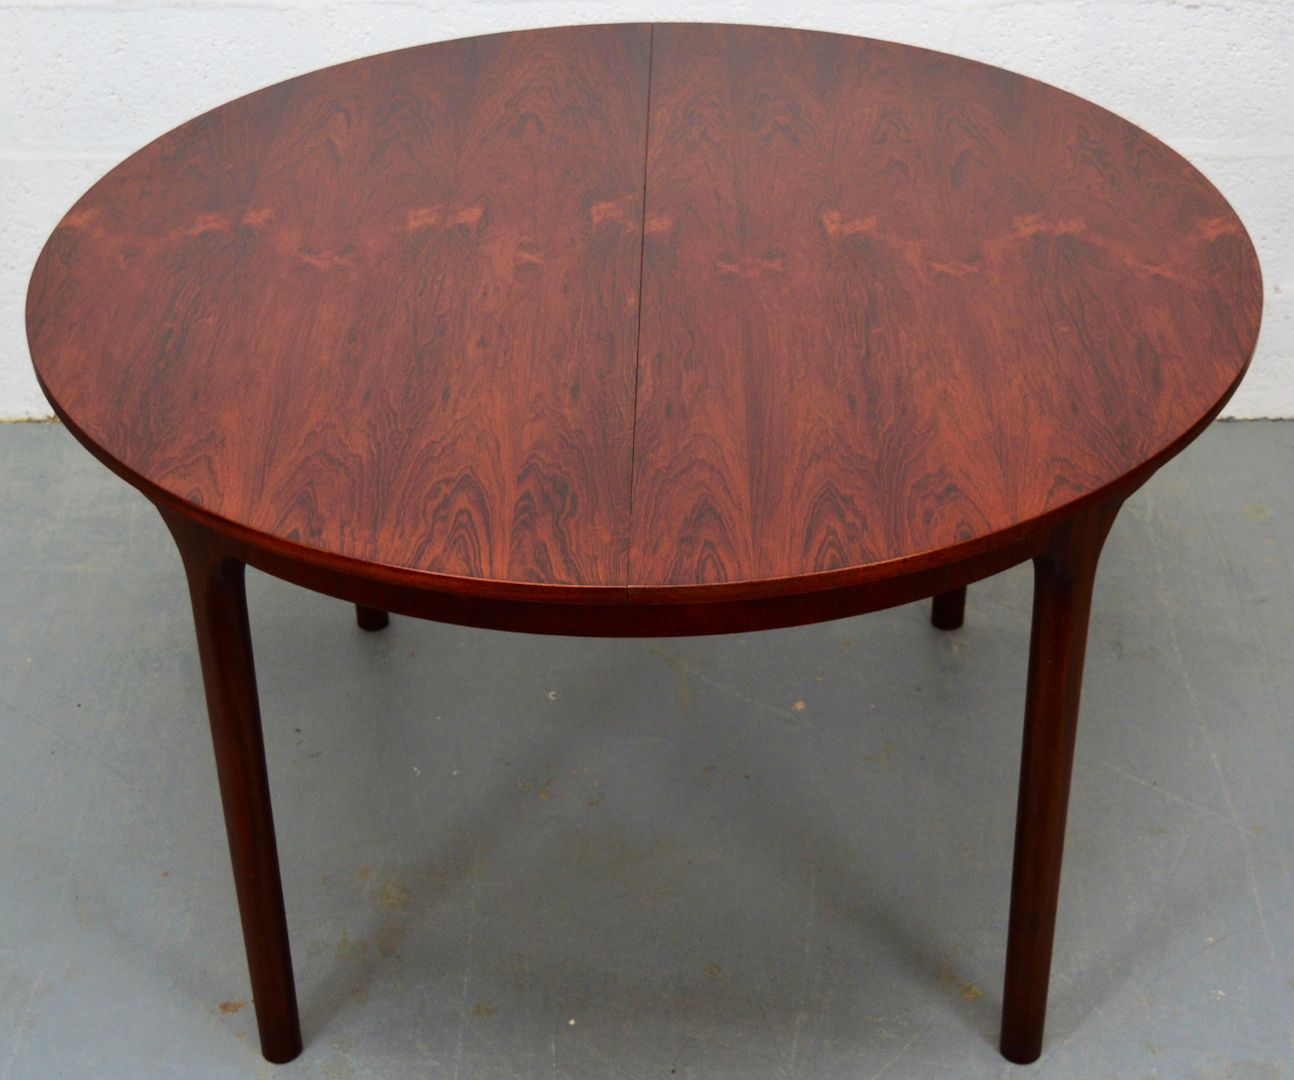 Vintage Rosewood Extendable Dining Table from McIntosh for  : vintage rosewood extendable dining table from mcintosh 1 from www.pamono.com size 1294 x 1080 jpeg 1427kB